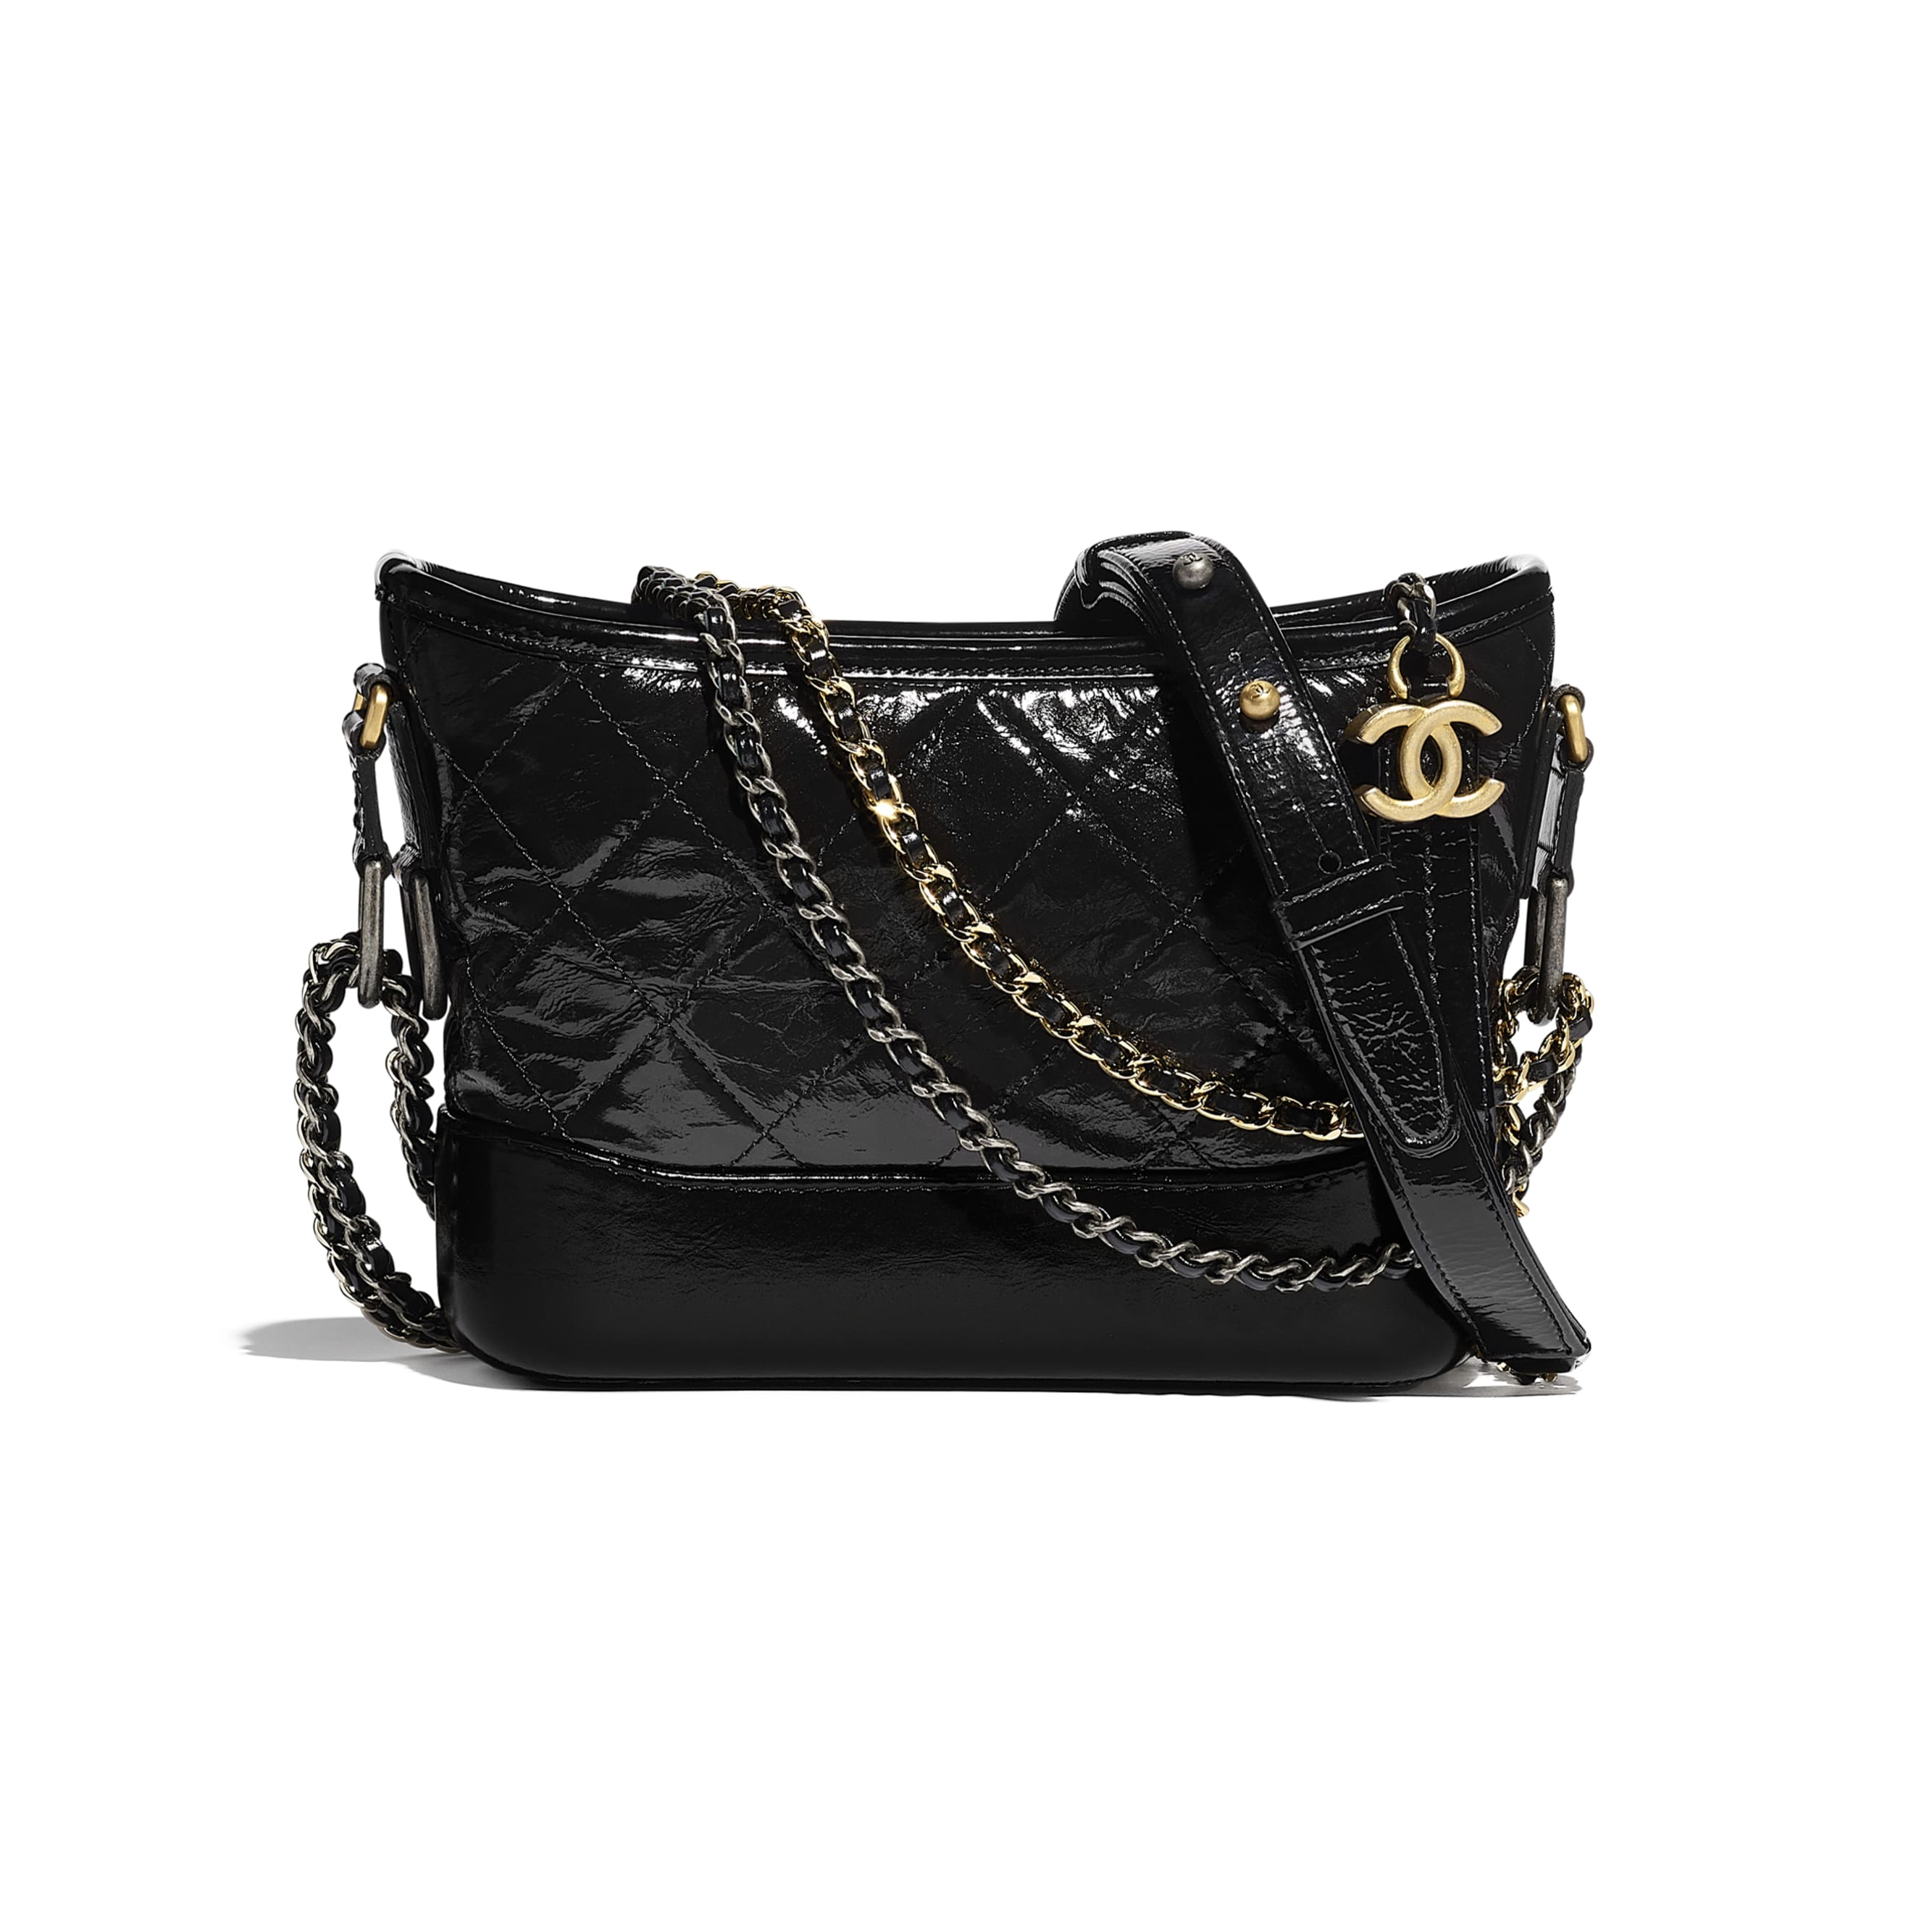 CHANEL'S GABRIELLE Small Hobo Bag - Black - Aged Calfskin, Smooth Calfskin, Gold-Tone, Silver-Tone & Ruthenium-Finish Metal - CHANEL - Default view - see standard sized version